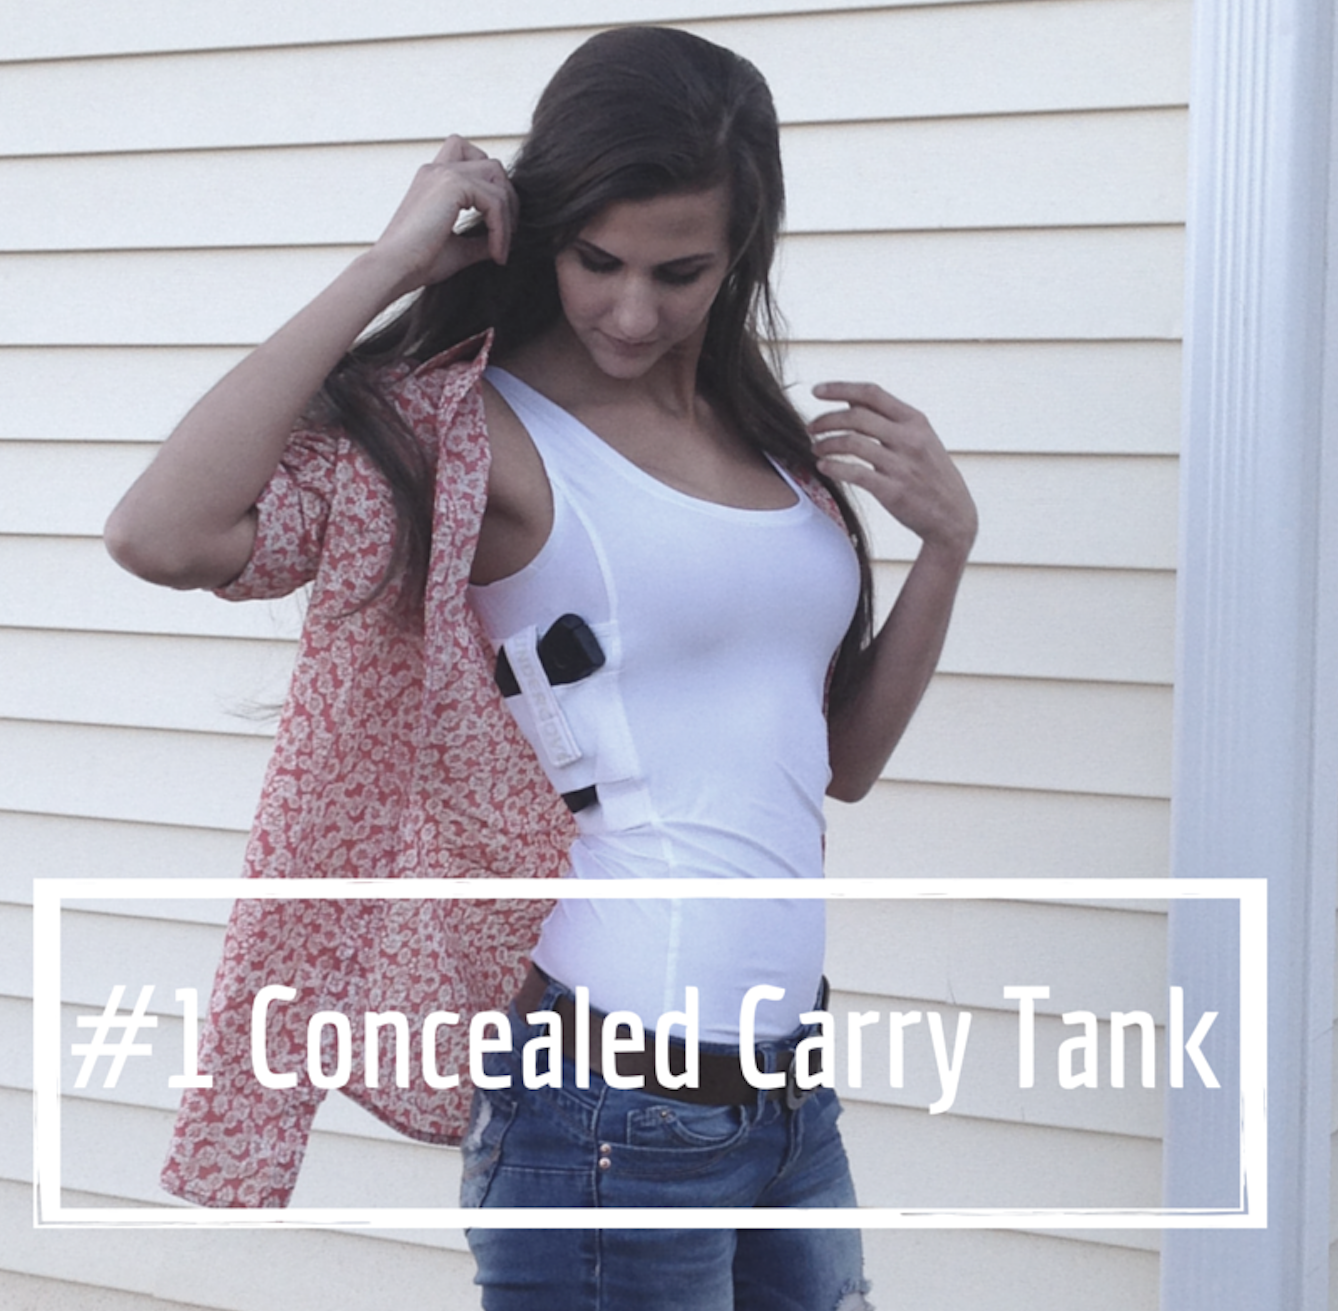 The #1 Concealed Carry Tank Top for Women. made in the USA by ...